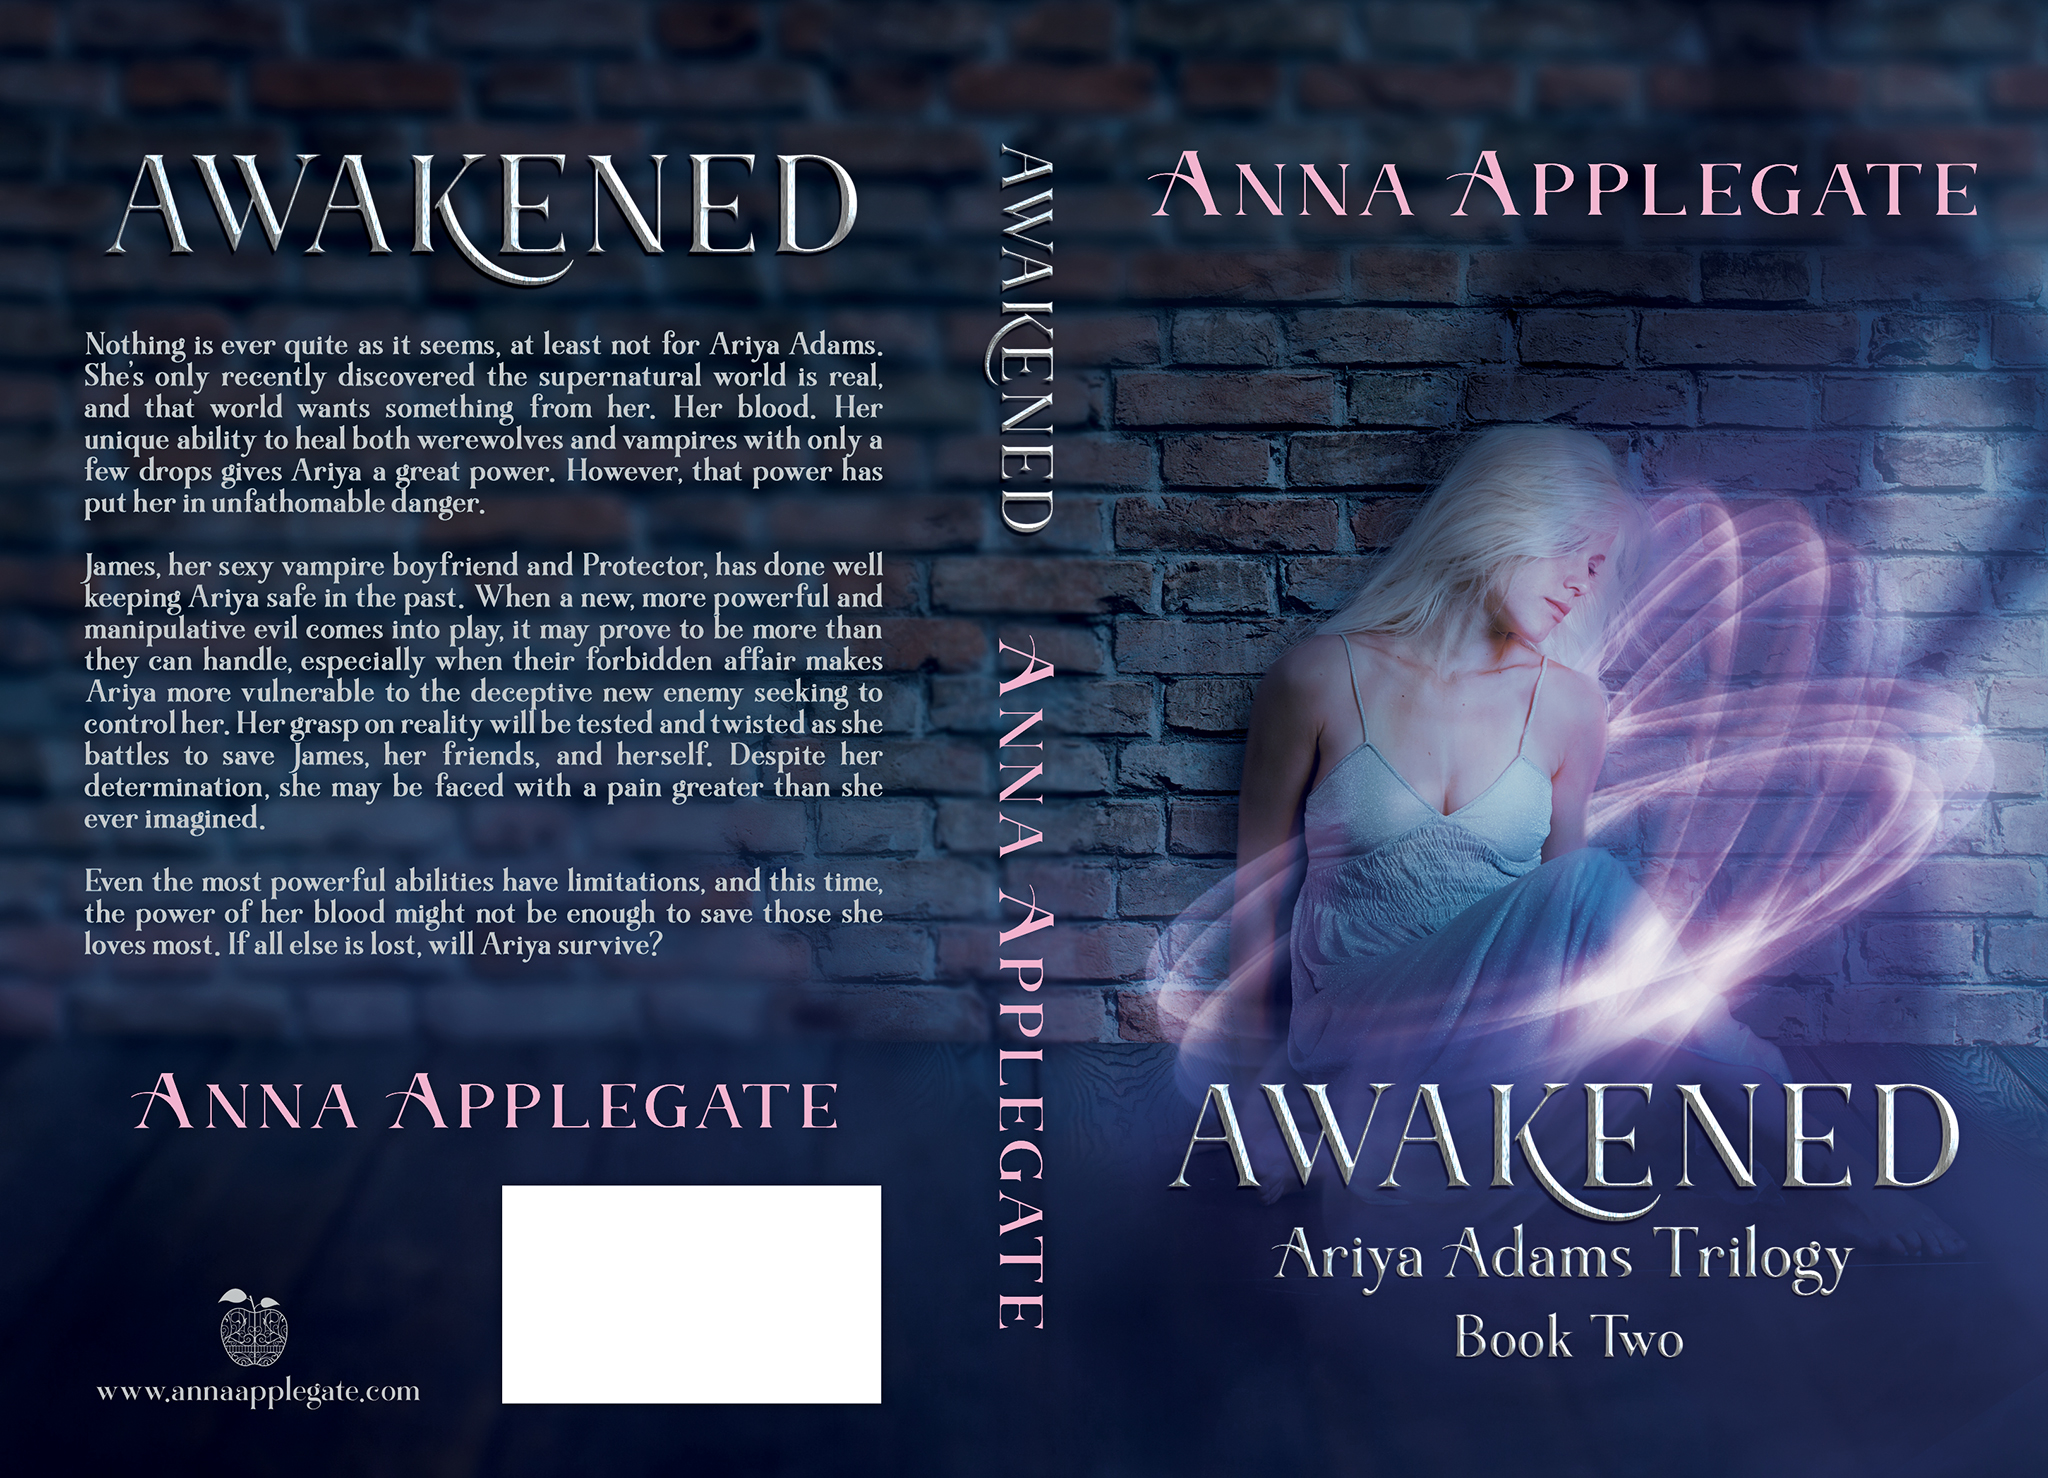 Final-Awakened-for-web-sharpened